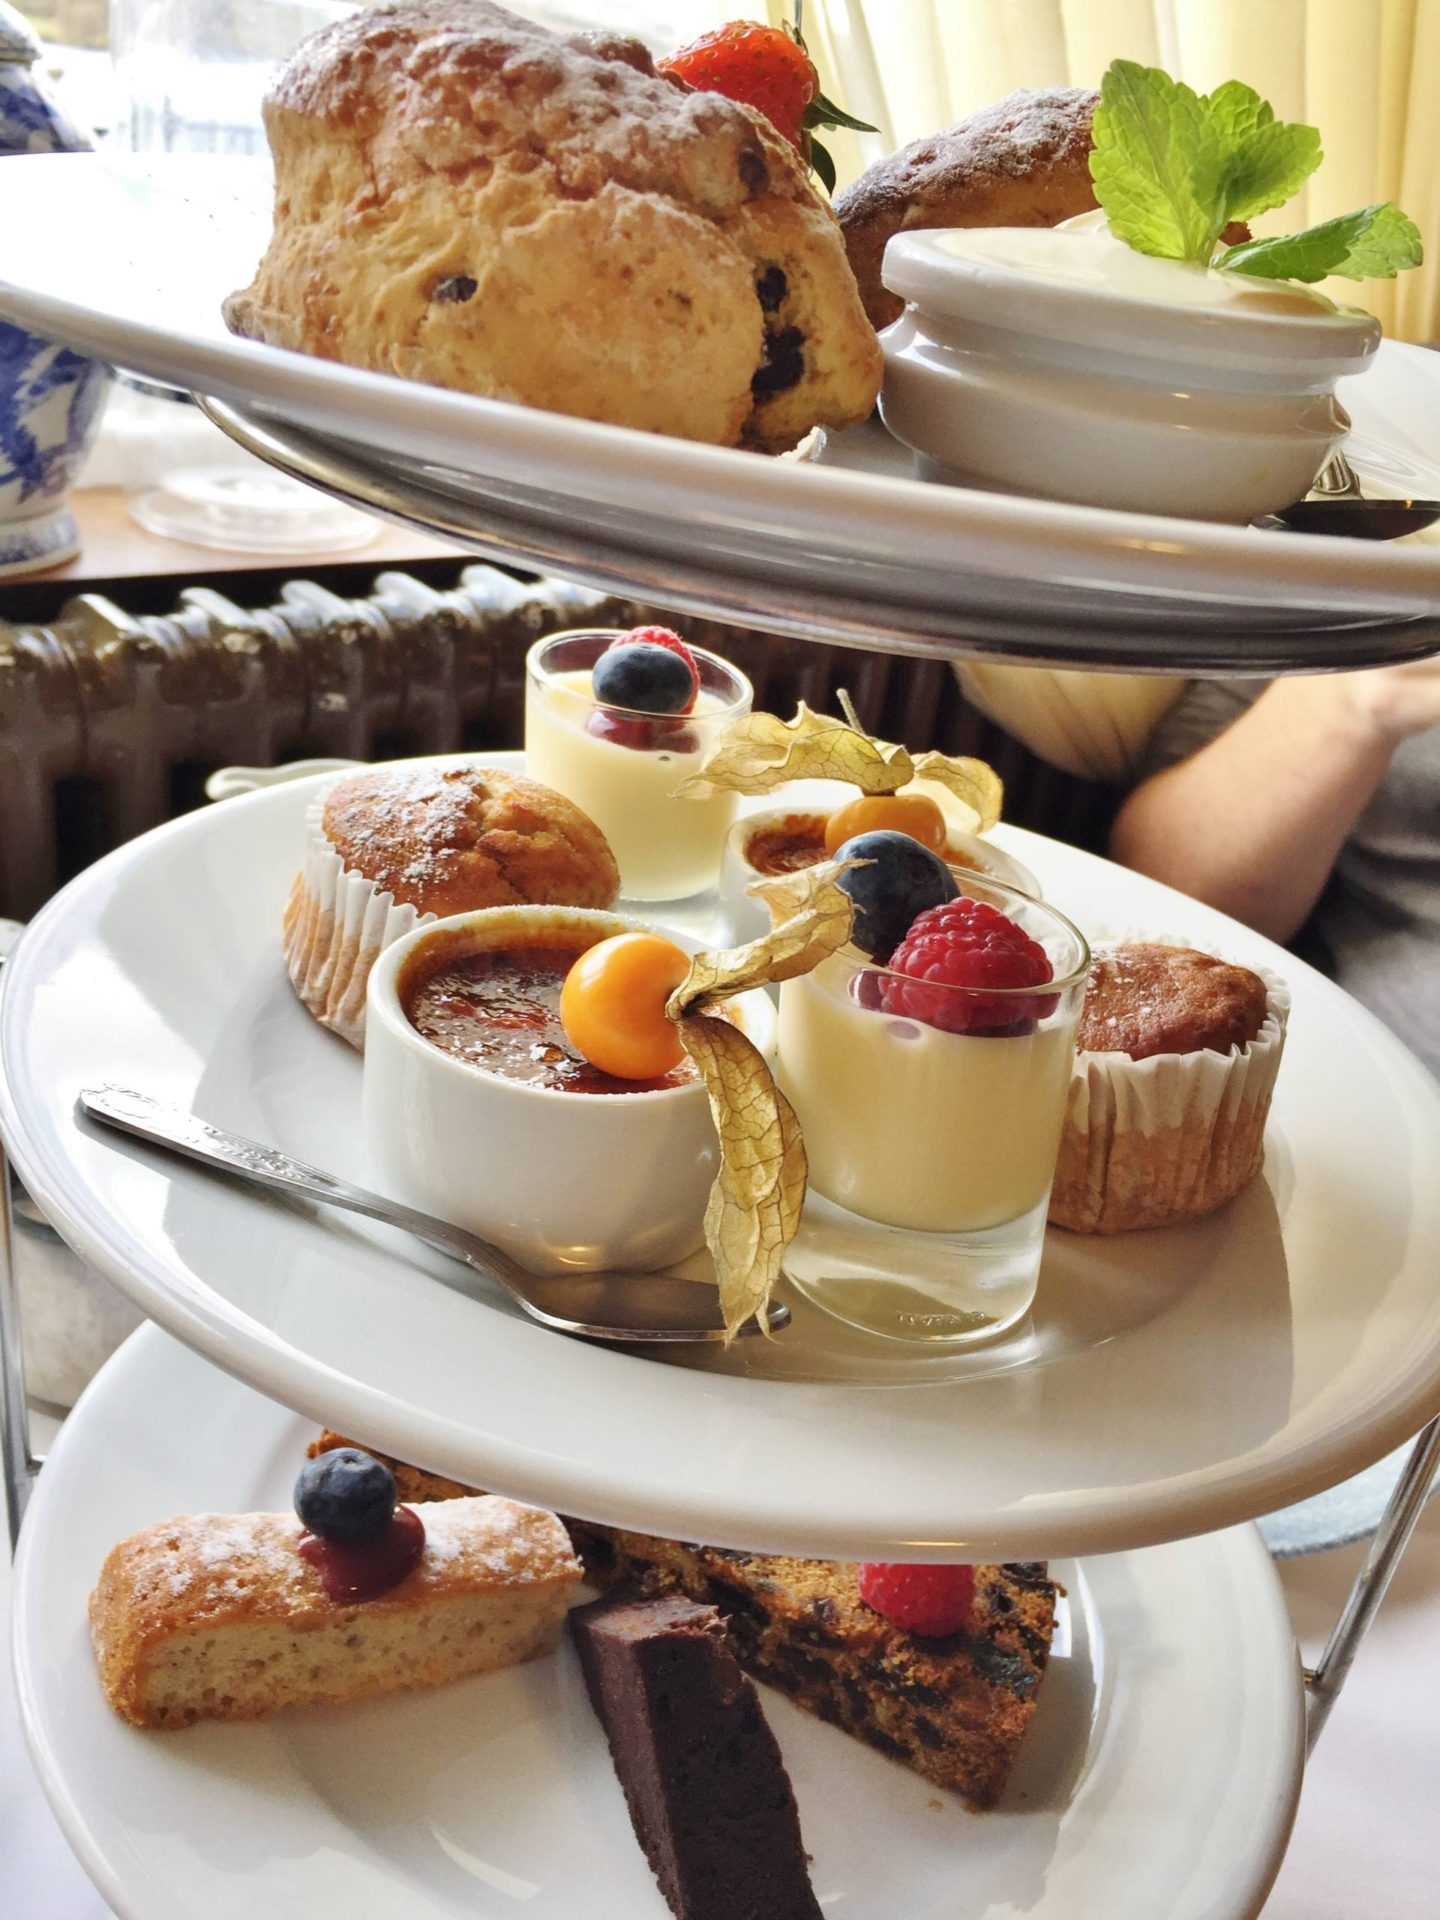 Emma Victoria Stokes Beech Hill Hotel And Spa Lakeview Windermere Champagne Afternoon Tea Scones Cakes